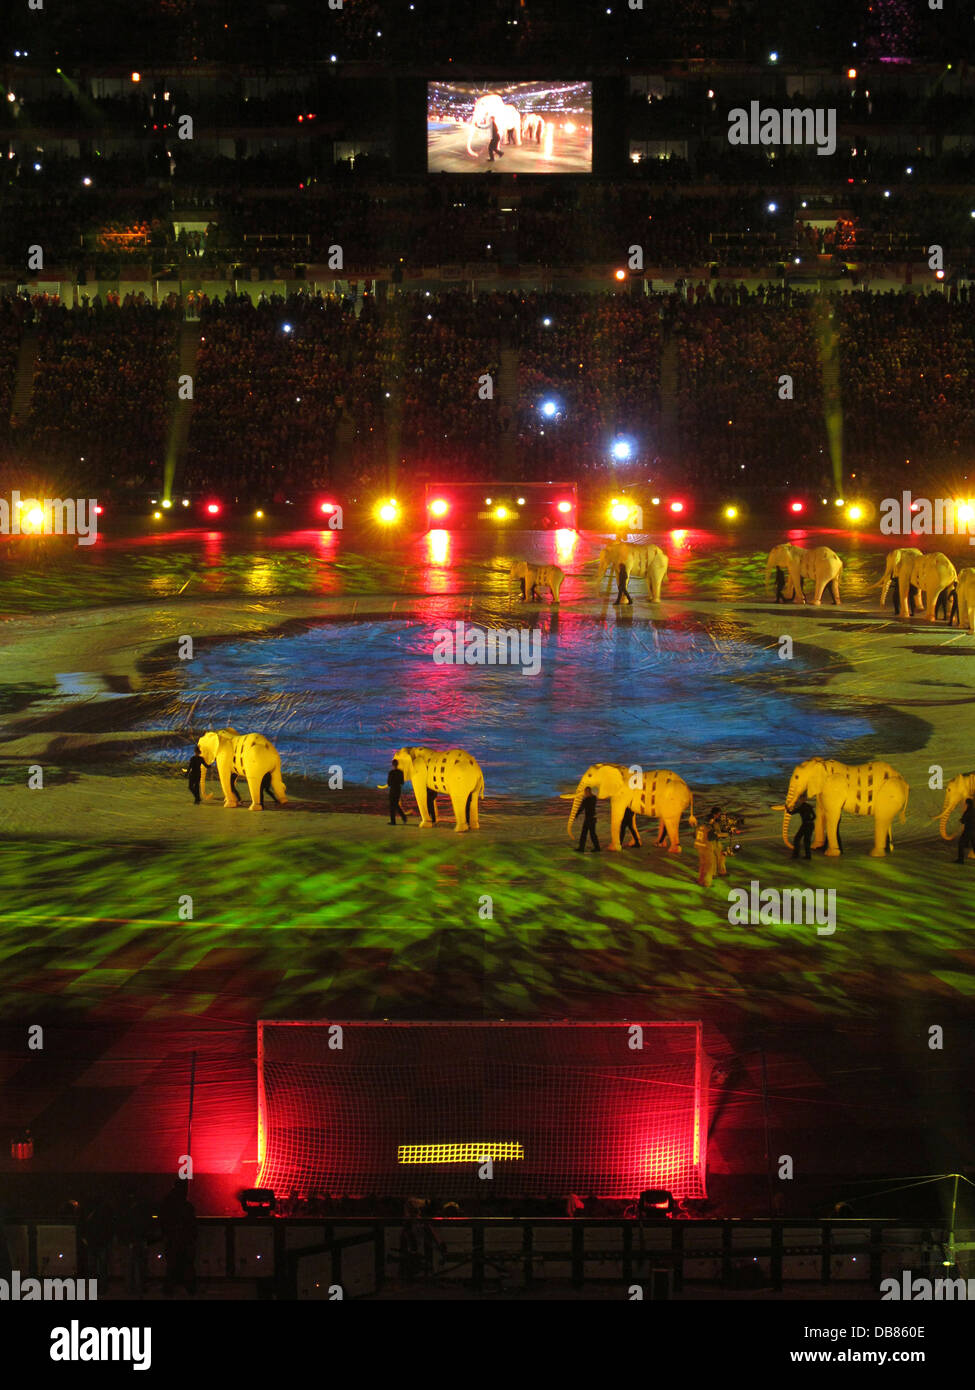 closing ceremony final World Cup Soccer 2010 FNB Stadium in Soweto during 2010 FIFA World Cup Soccer in South Africa - Stock Image